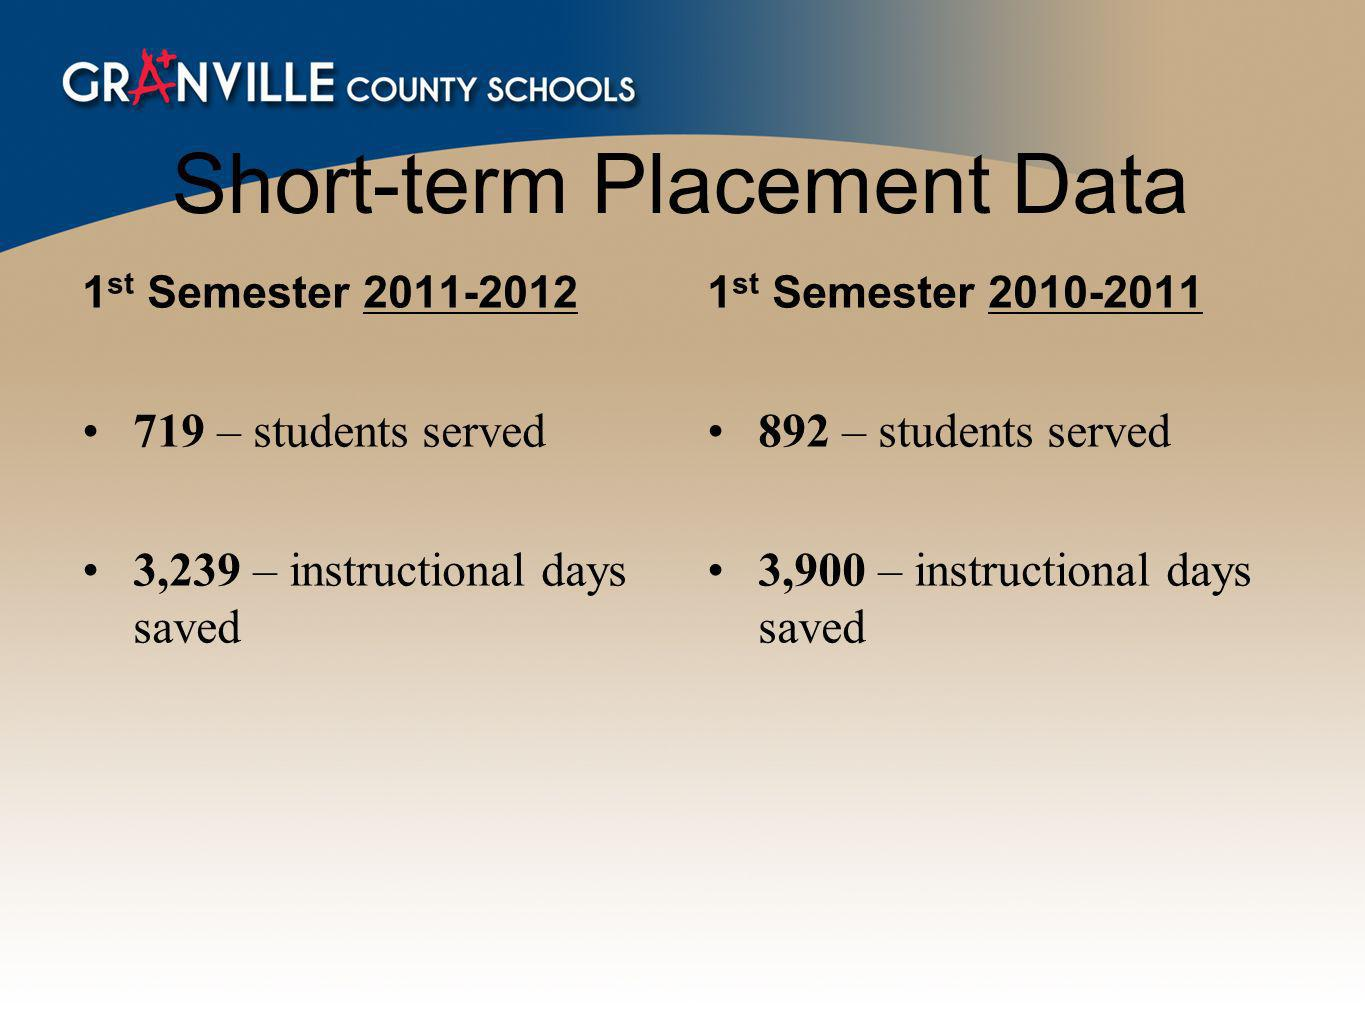 Short-term Placement Data